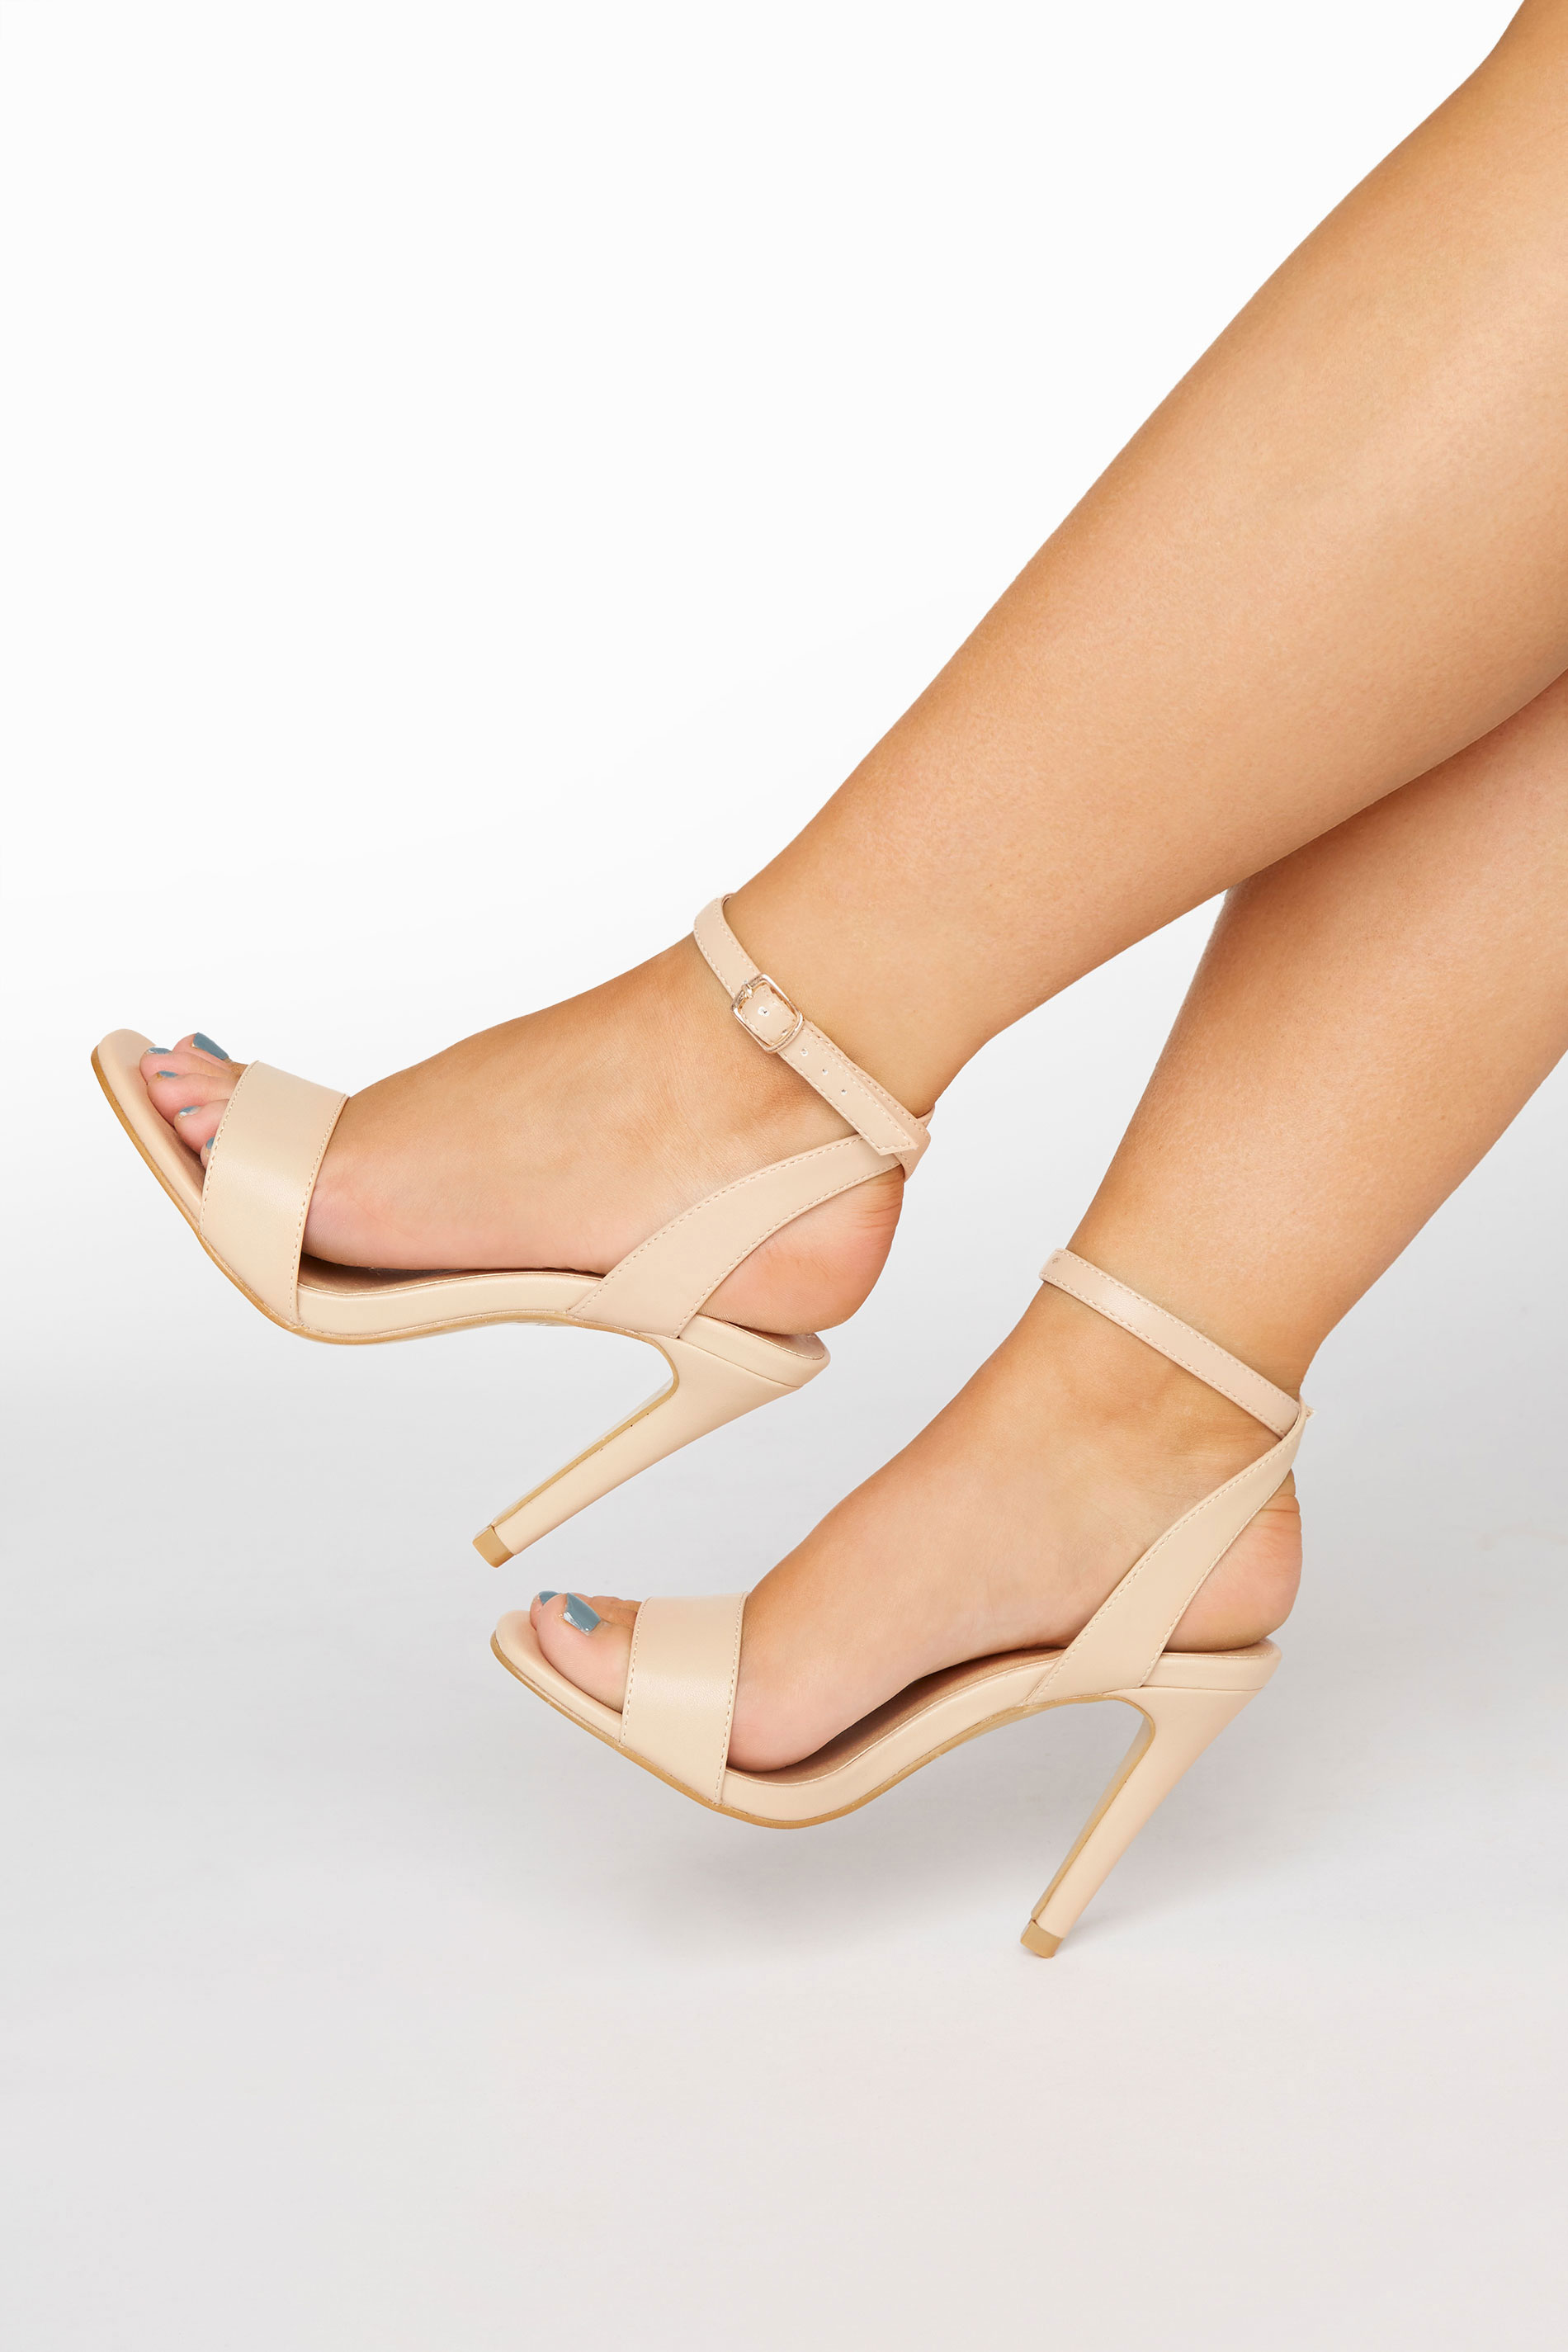 Yours LIMITED COLLECTION Nude Strappy Two Part Heels In Extra Wide Fit